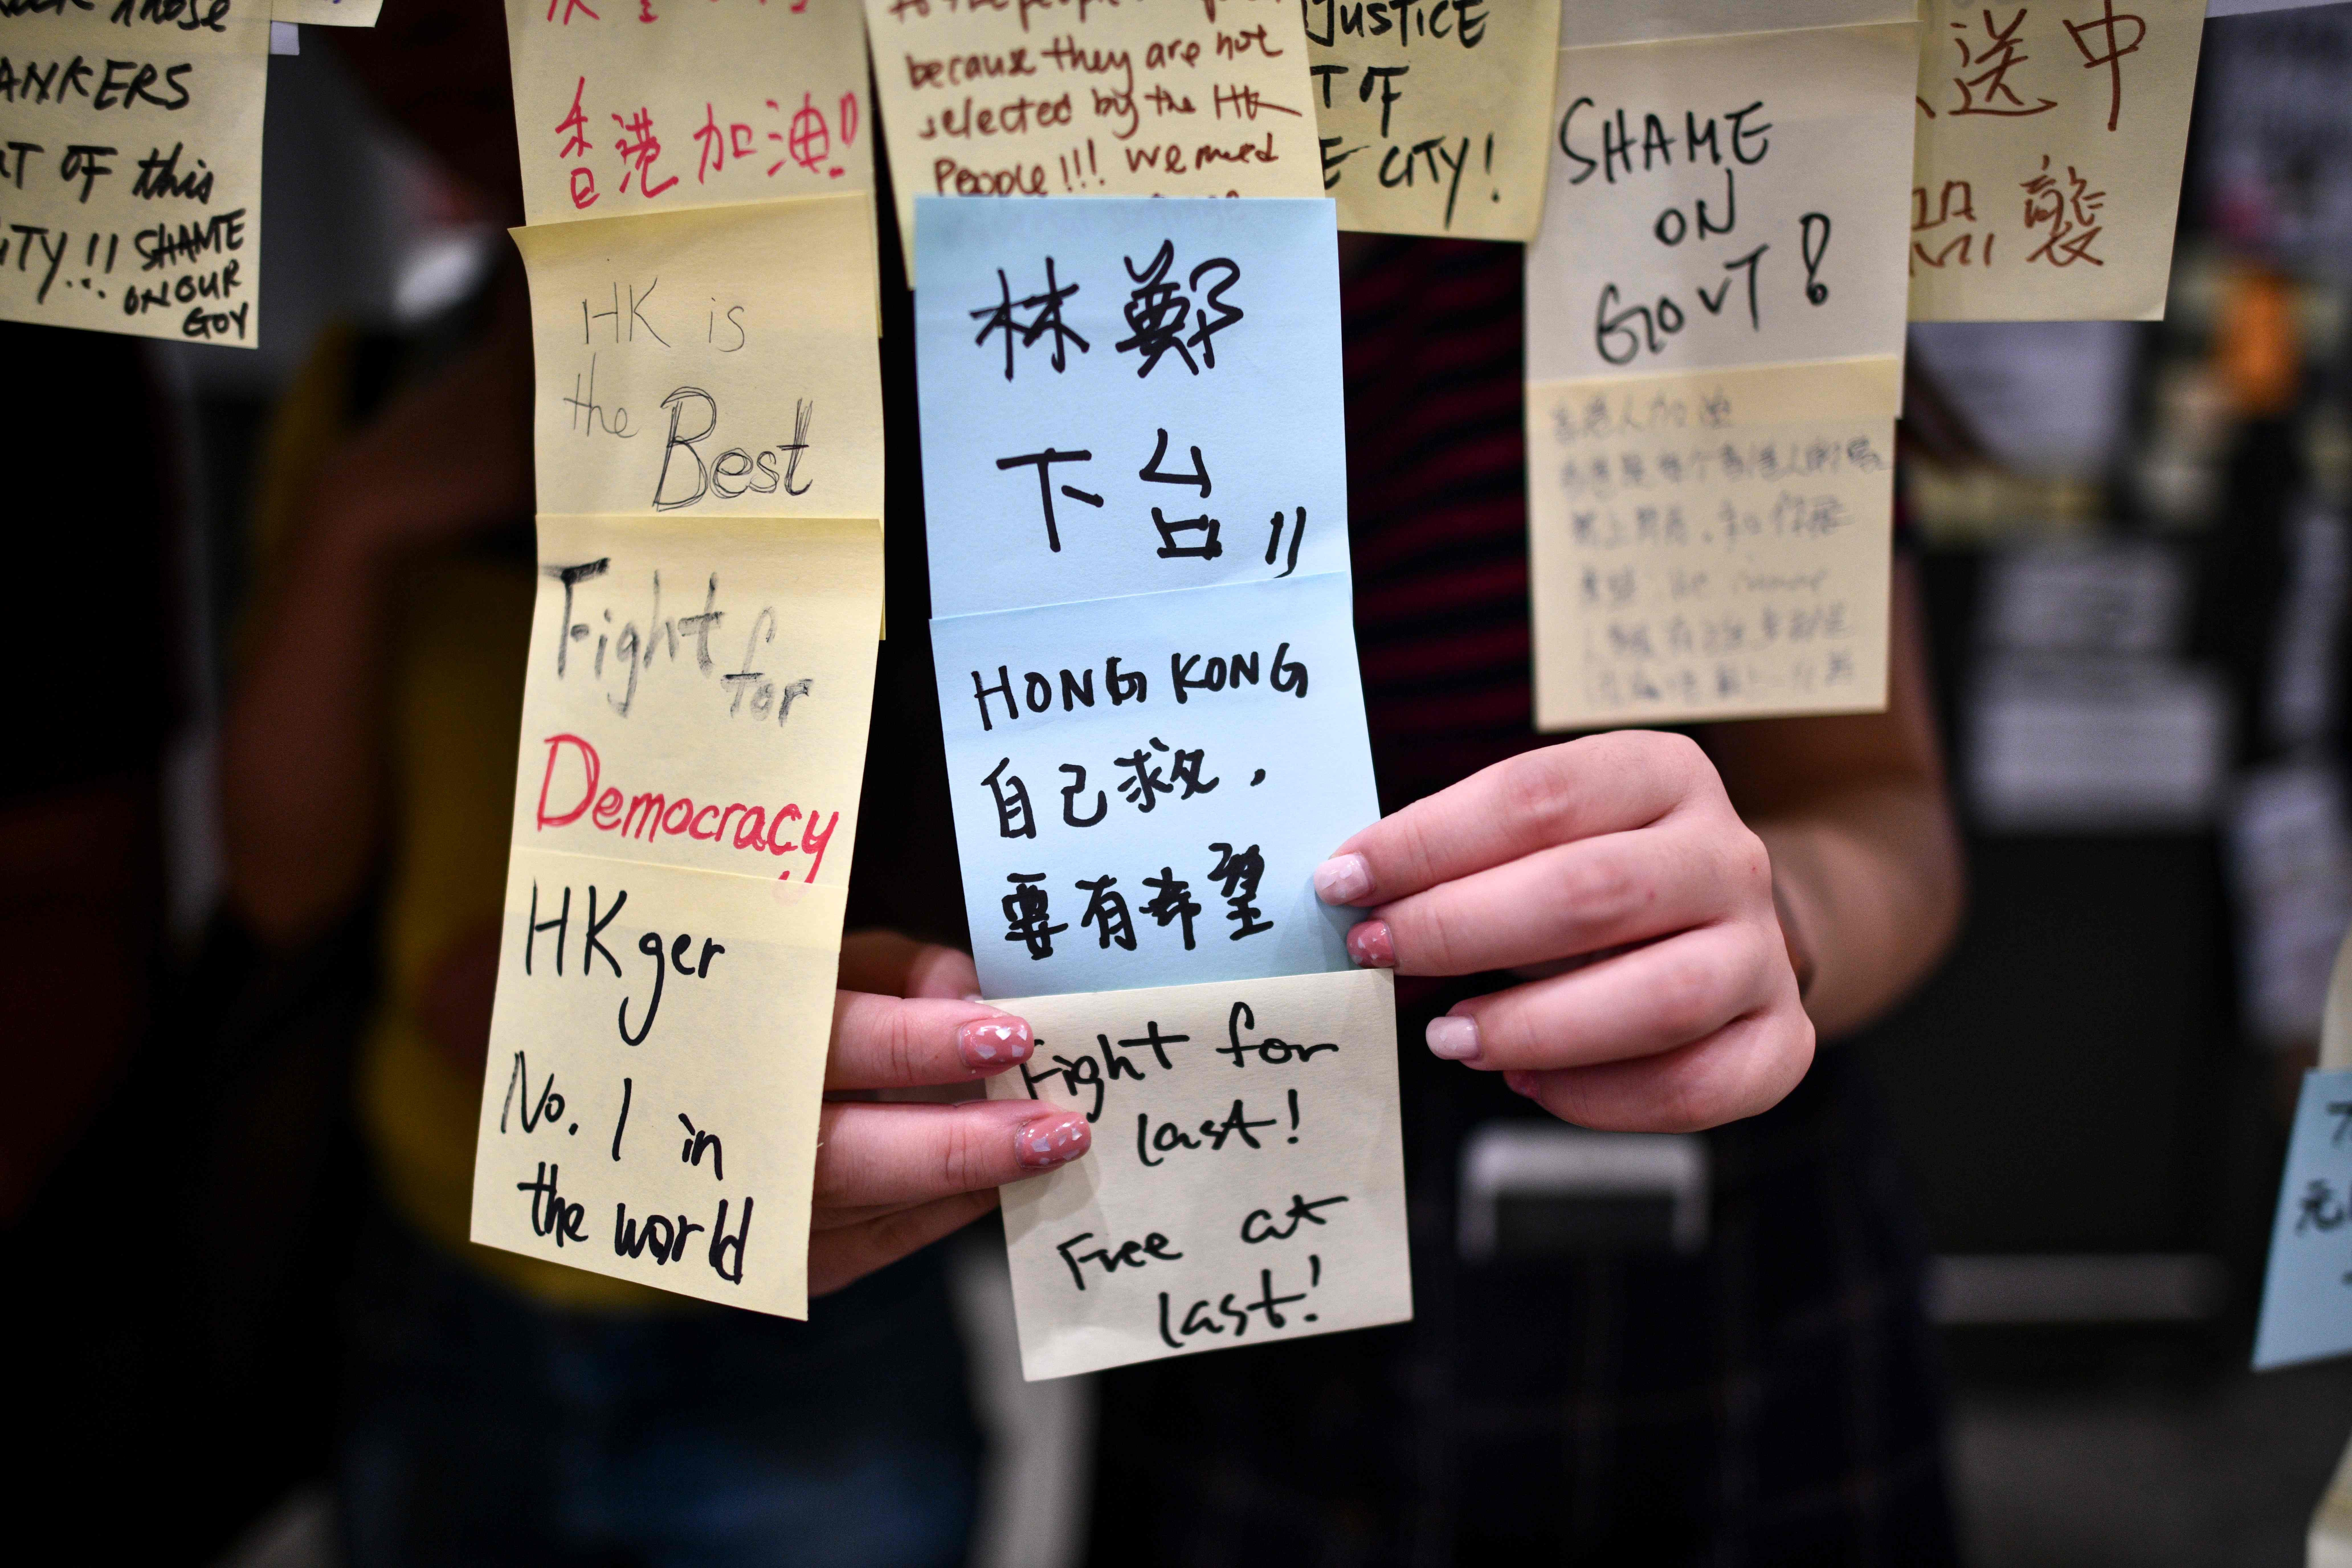 Hong Kong protesters should not be afraid to use English to